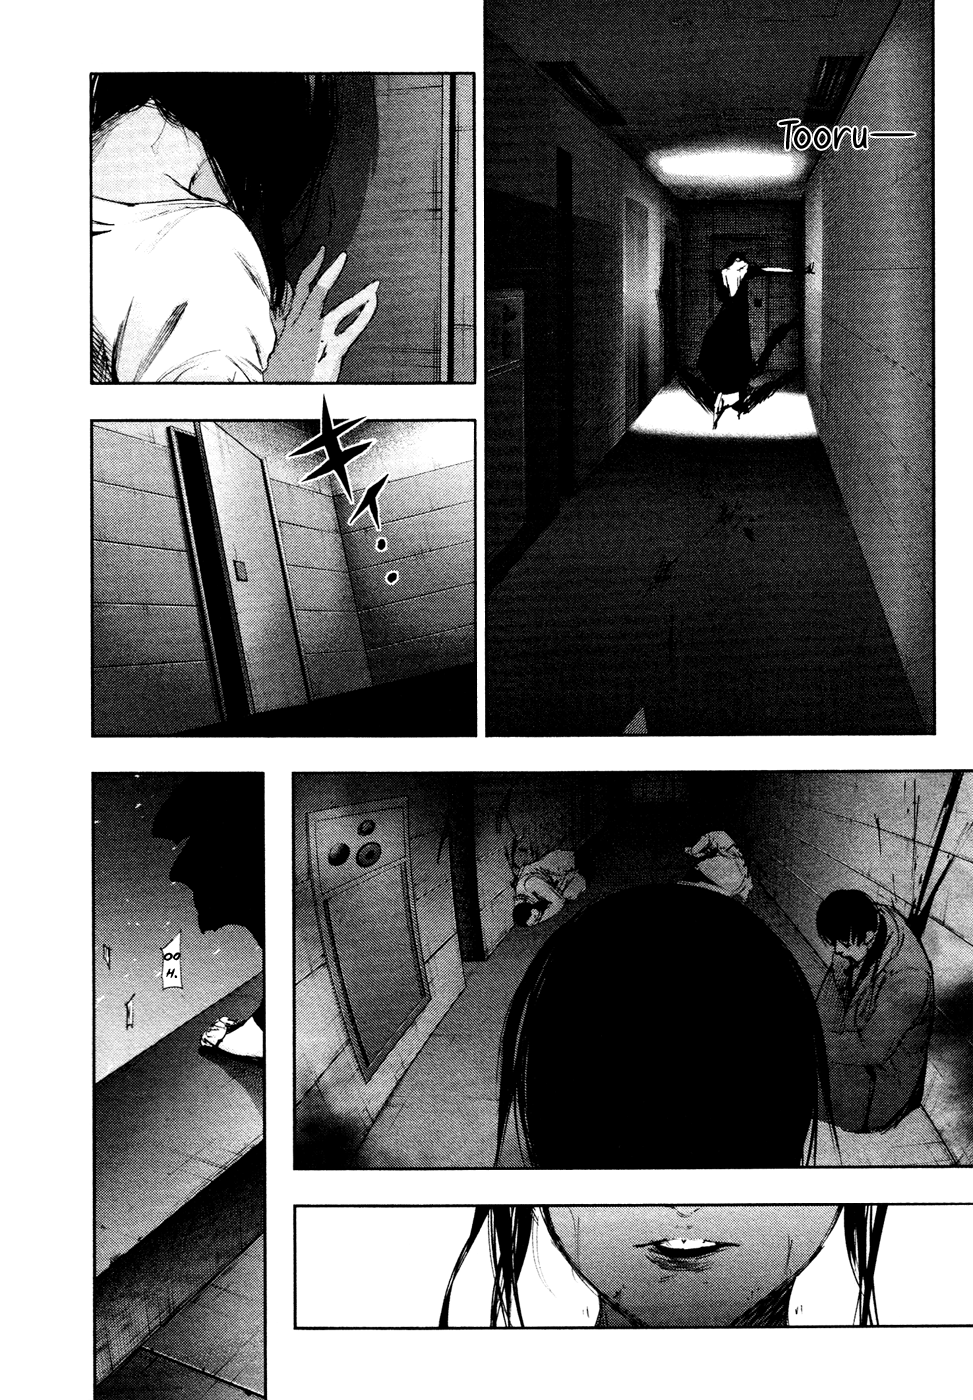 Tokyo Ghoulre Chapter 21  Online Free Manga Read Image 20